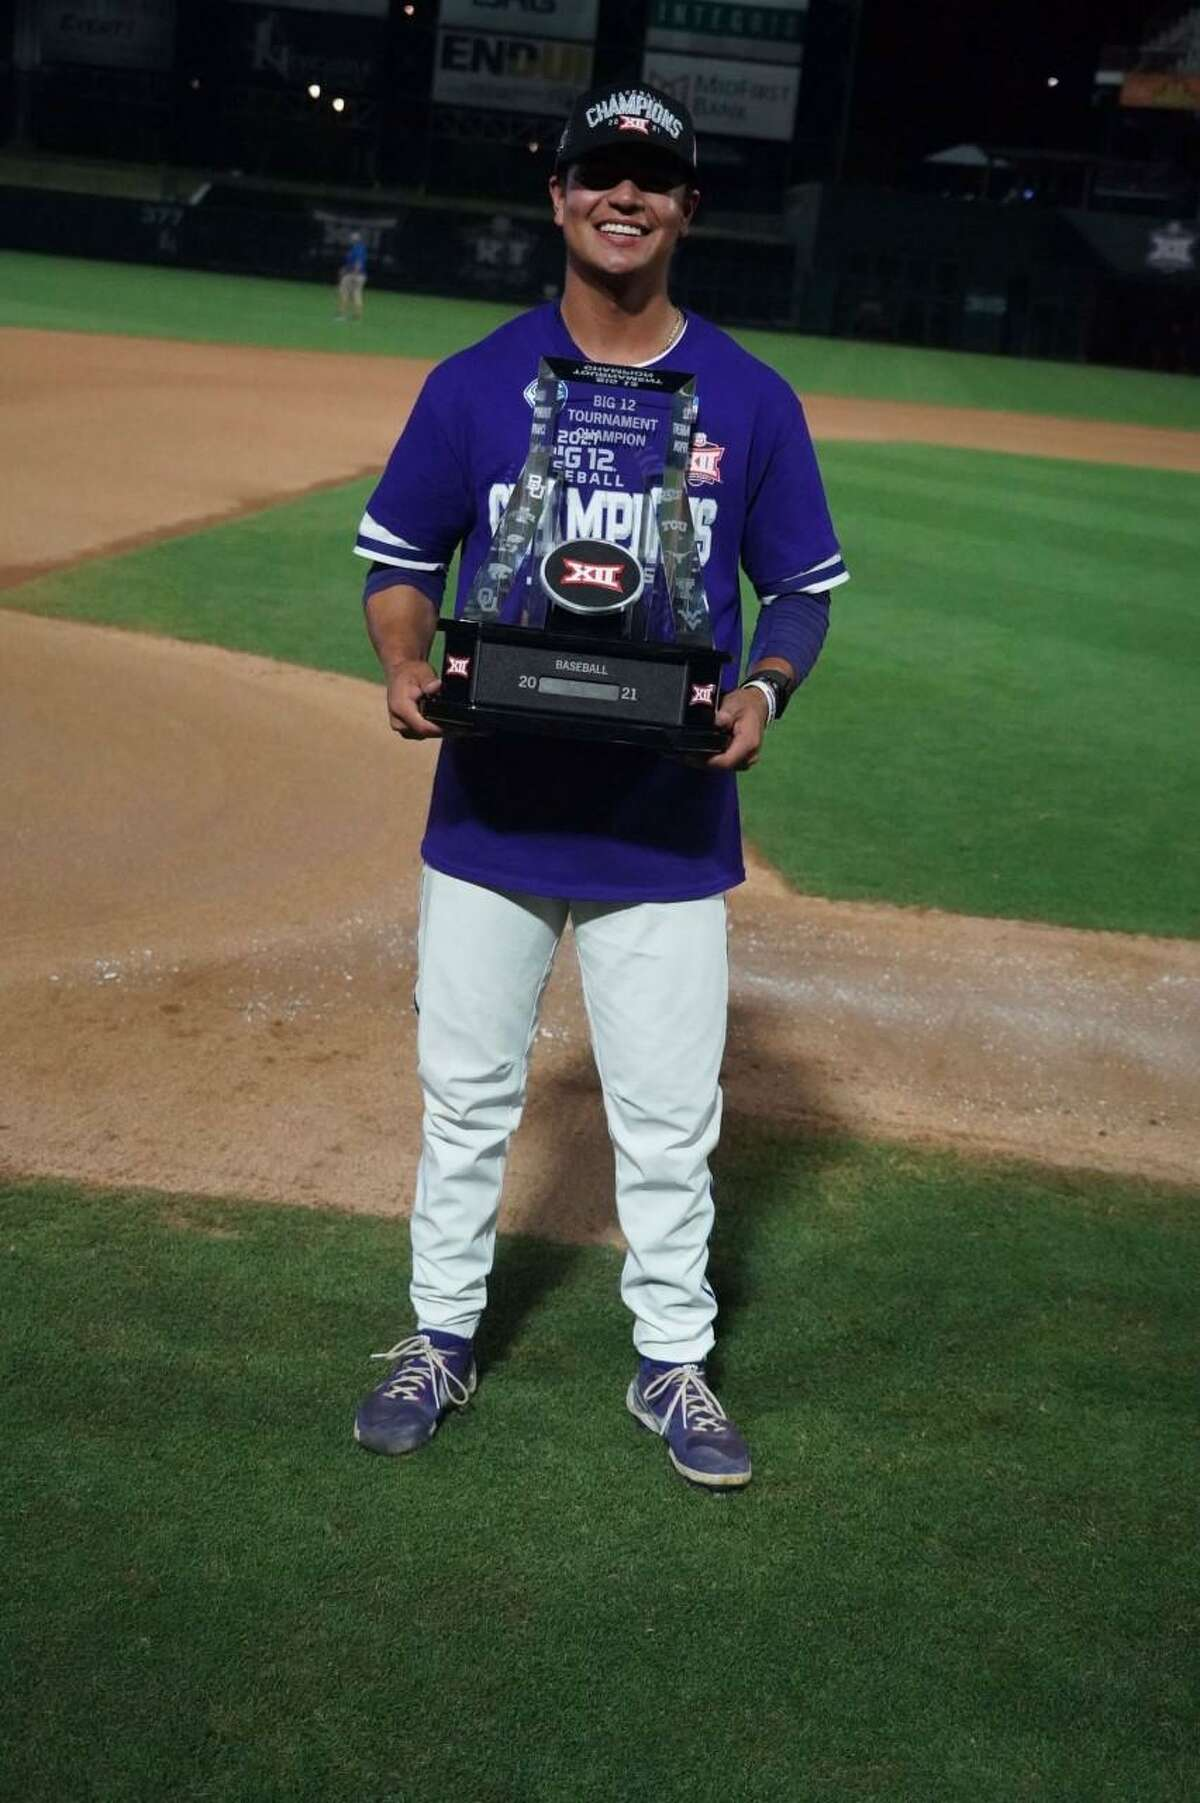 Marcelo Perez and TCU won the Big 12 title on Sunday with a 10-7 victory over Oklahoma State.